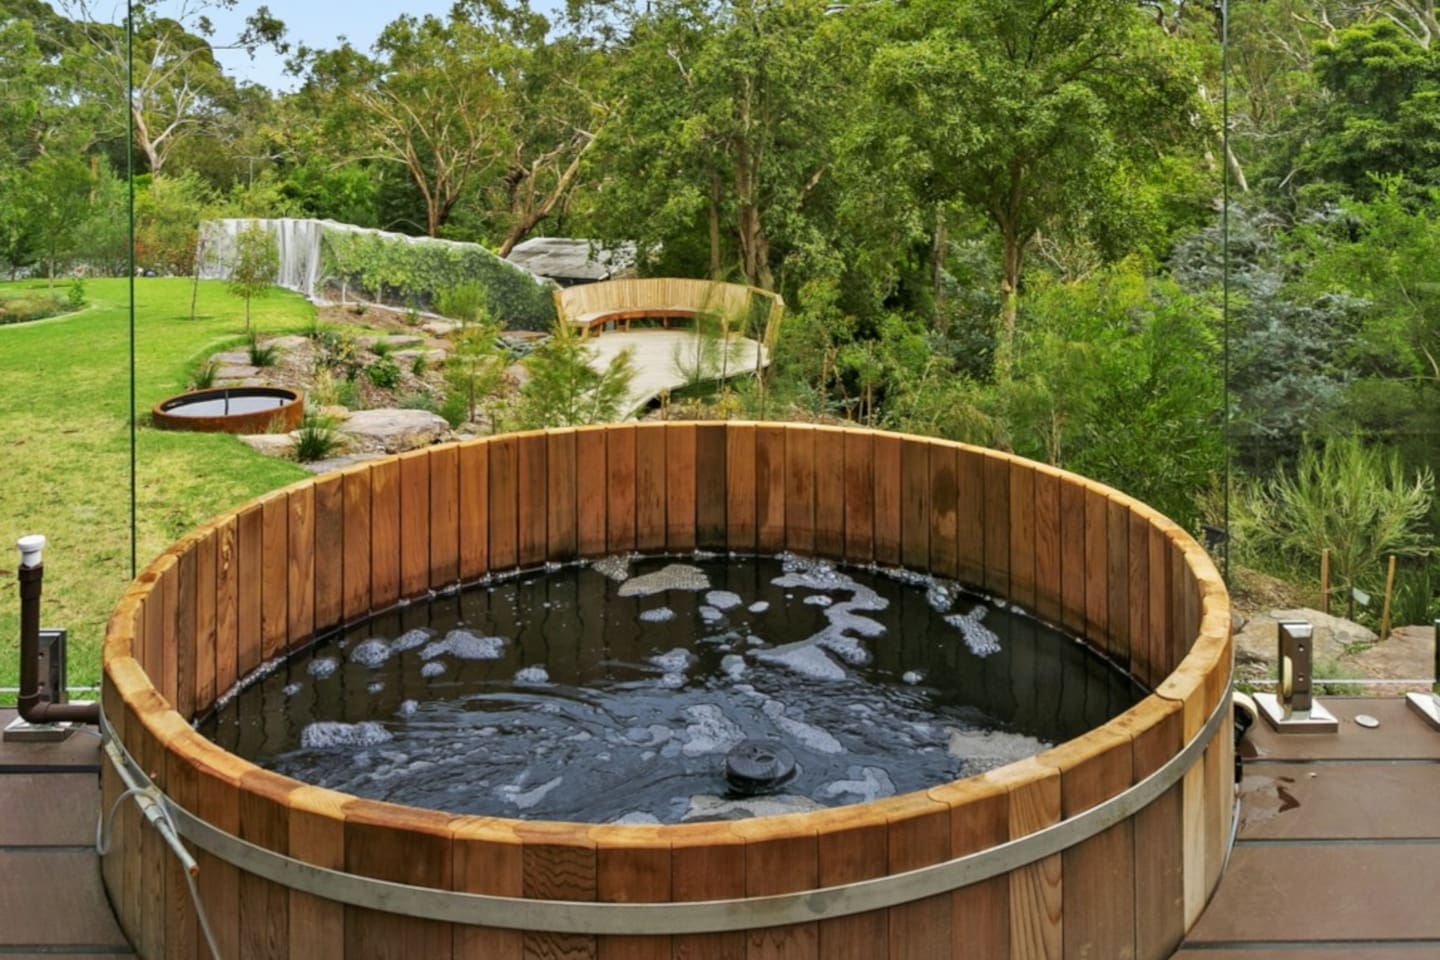 Enjoy the calming Cedar hot tub to relieve aching muscles or just enjoy the serenity of the gorgeous garden.  At  night relax, sip a glass of wine while stargazing (tub is chlorine-free!)